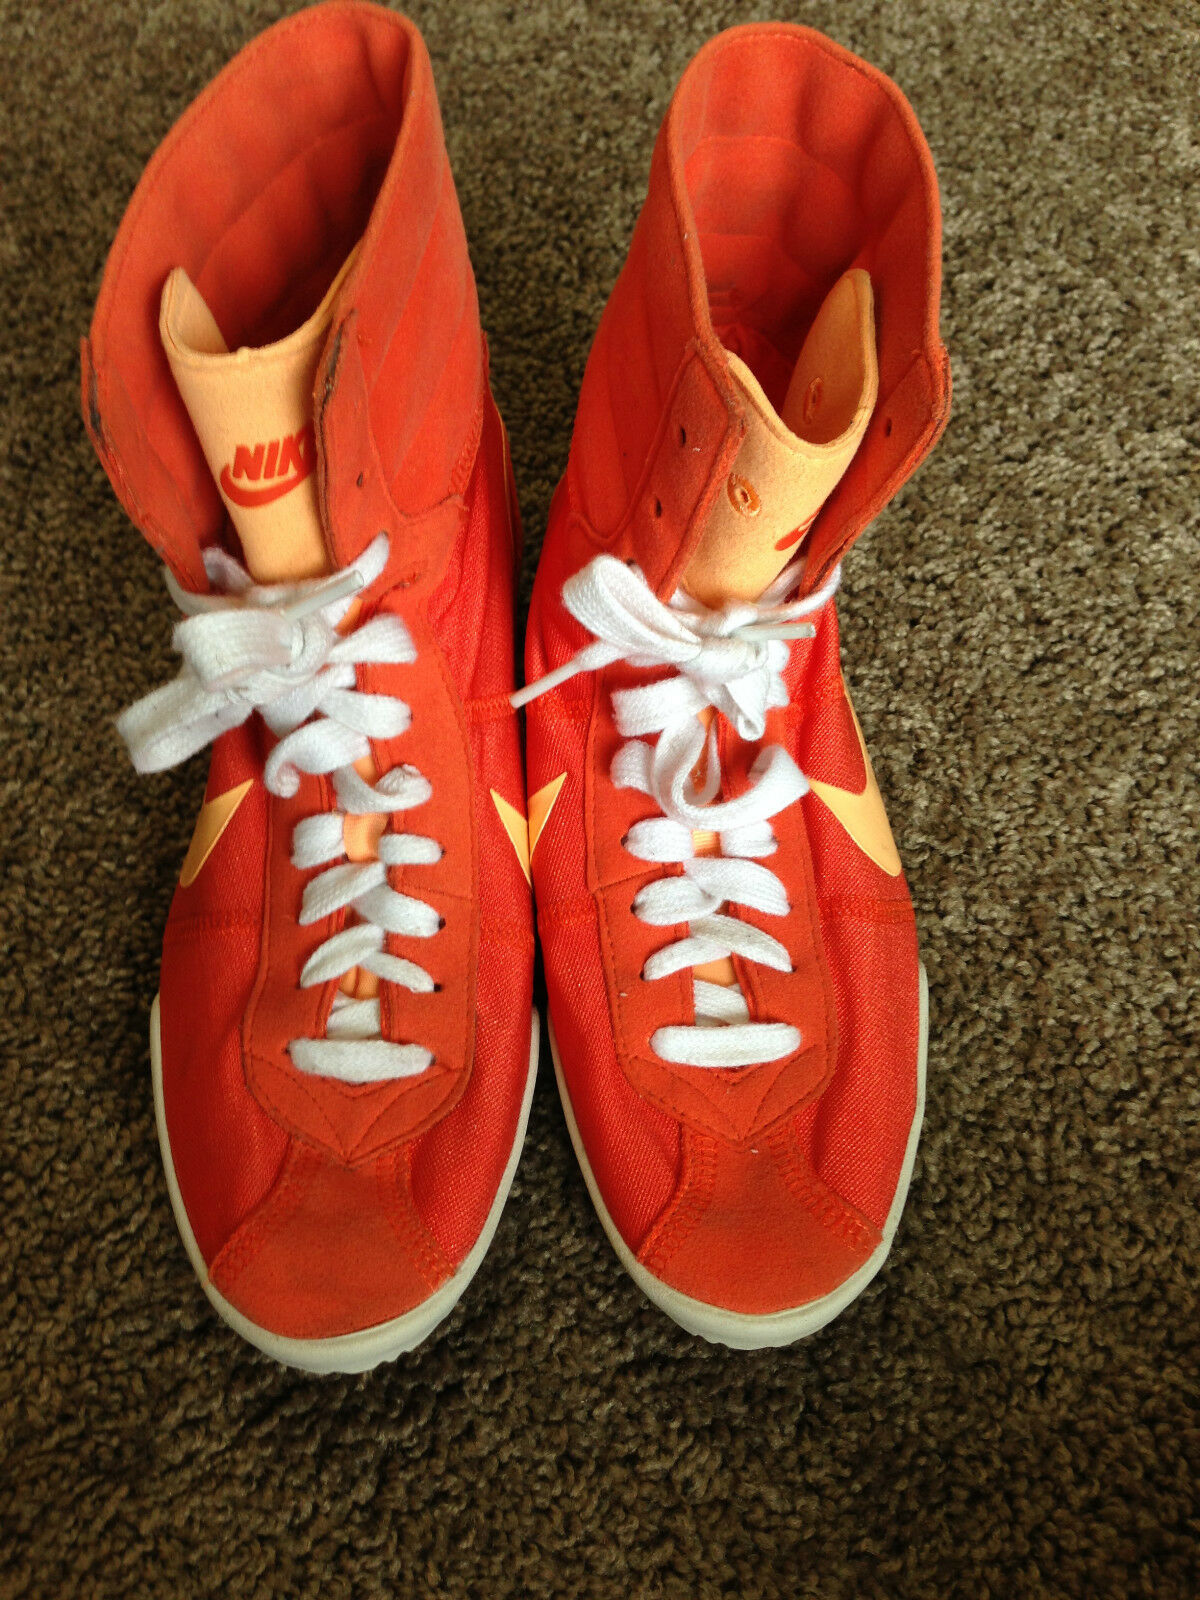 Nike Orange High Top Athletic Mens Size 7 Shoes 429887-800 ~ USED